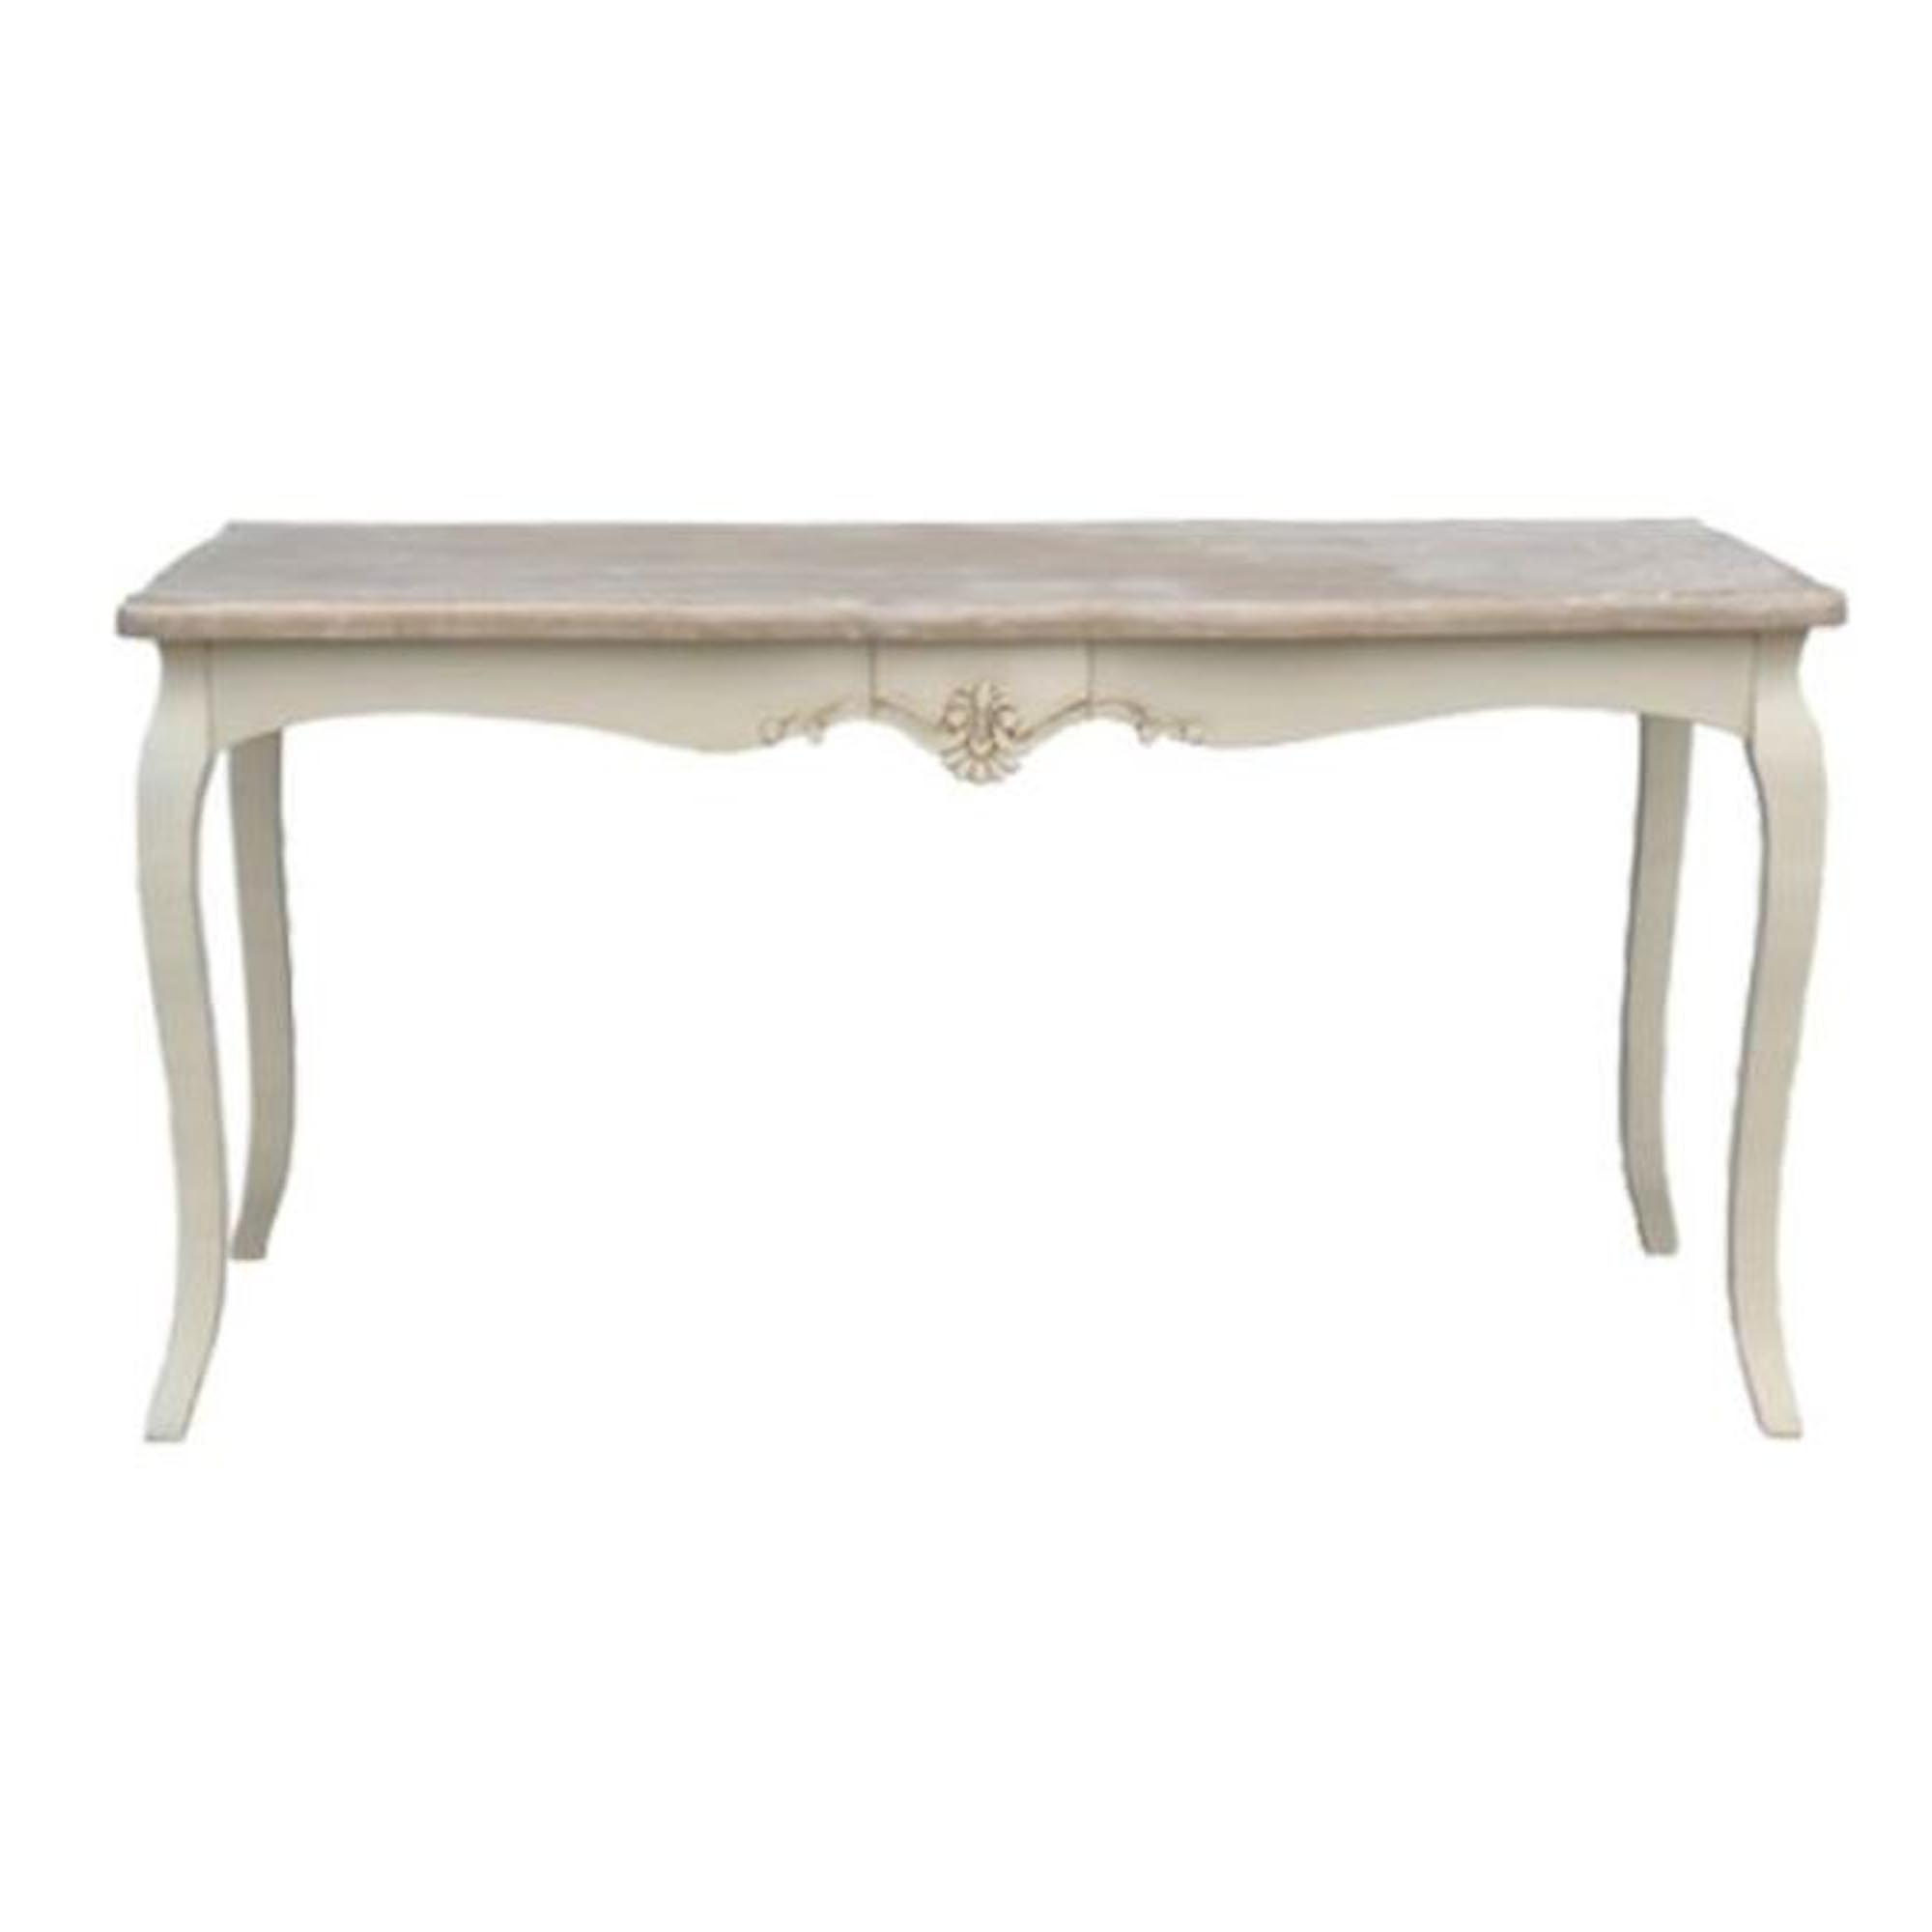 Loire antique french style dining table dining table homesdirect365 - Antique french dining tables ...